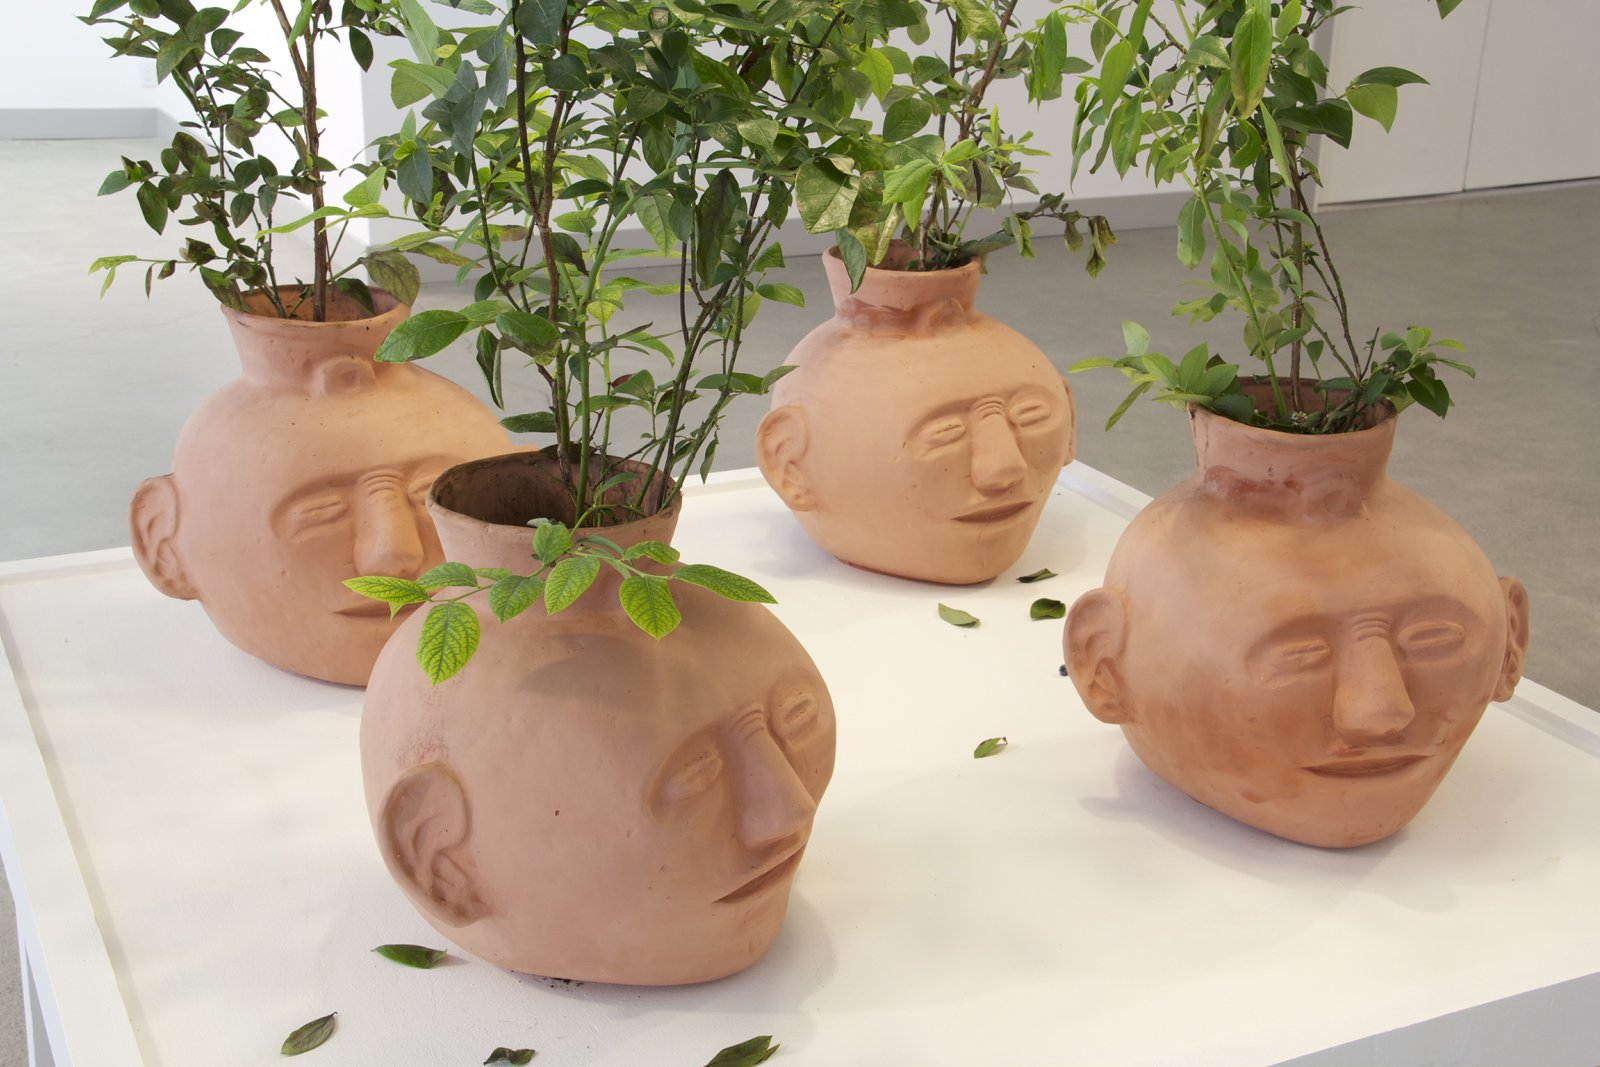 Duane Linklater, Blueberries for 12 Vessels(detail), 2015, blueberry bushes, clay, earth, dimensions variable